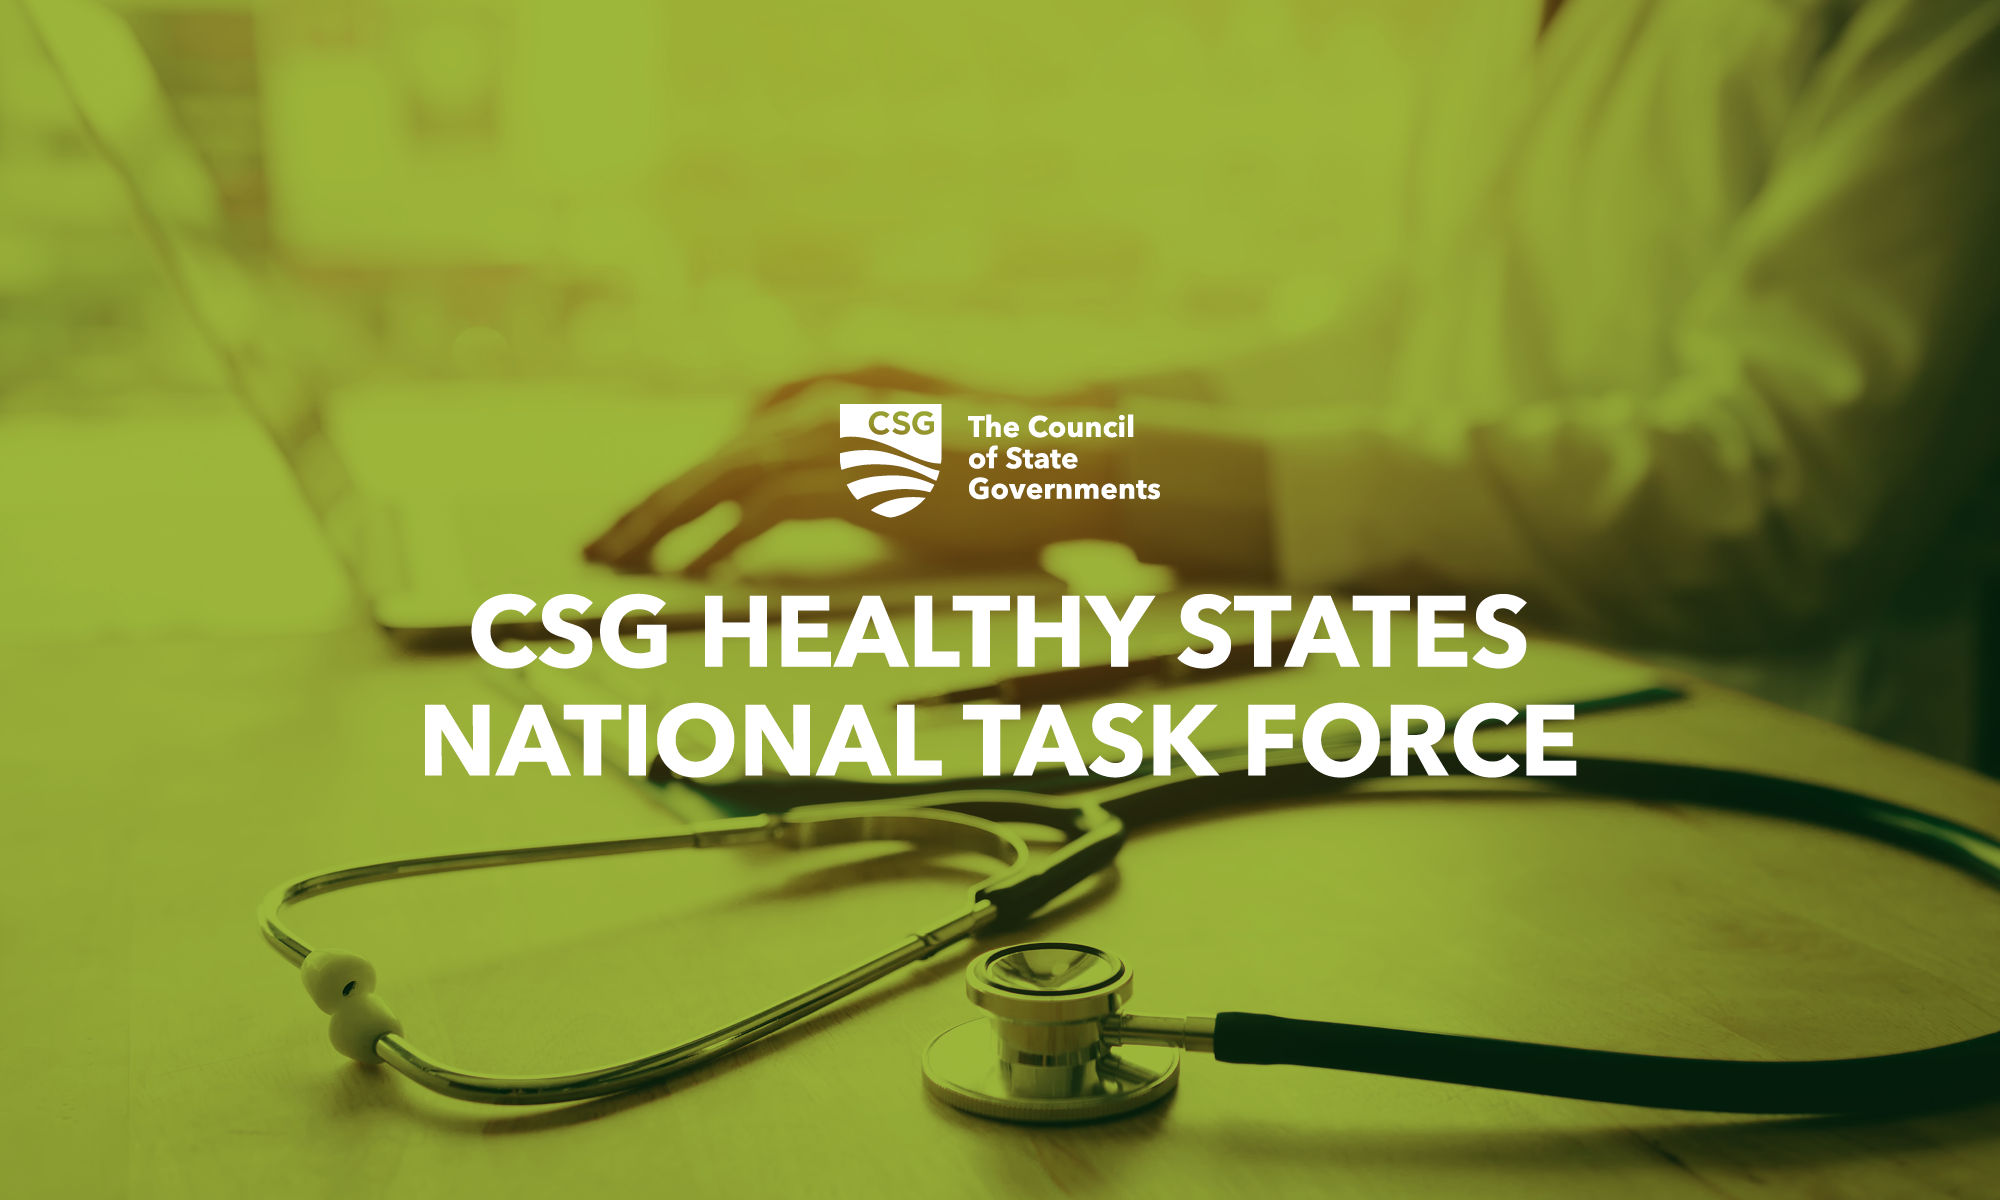 Healthy States National Task Force